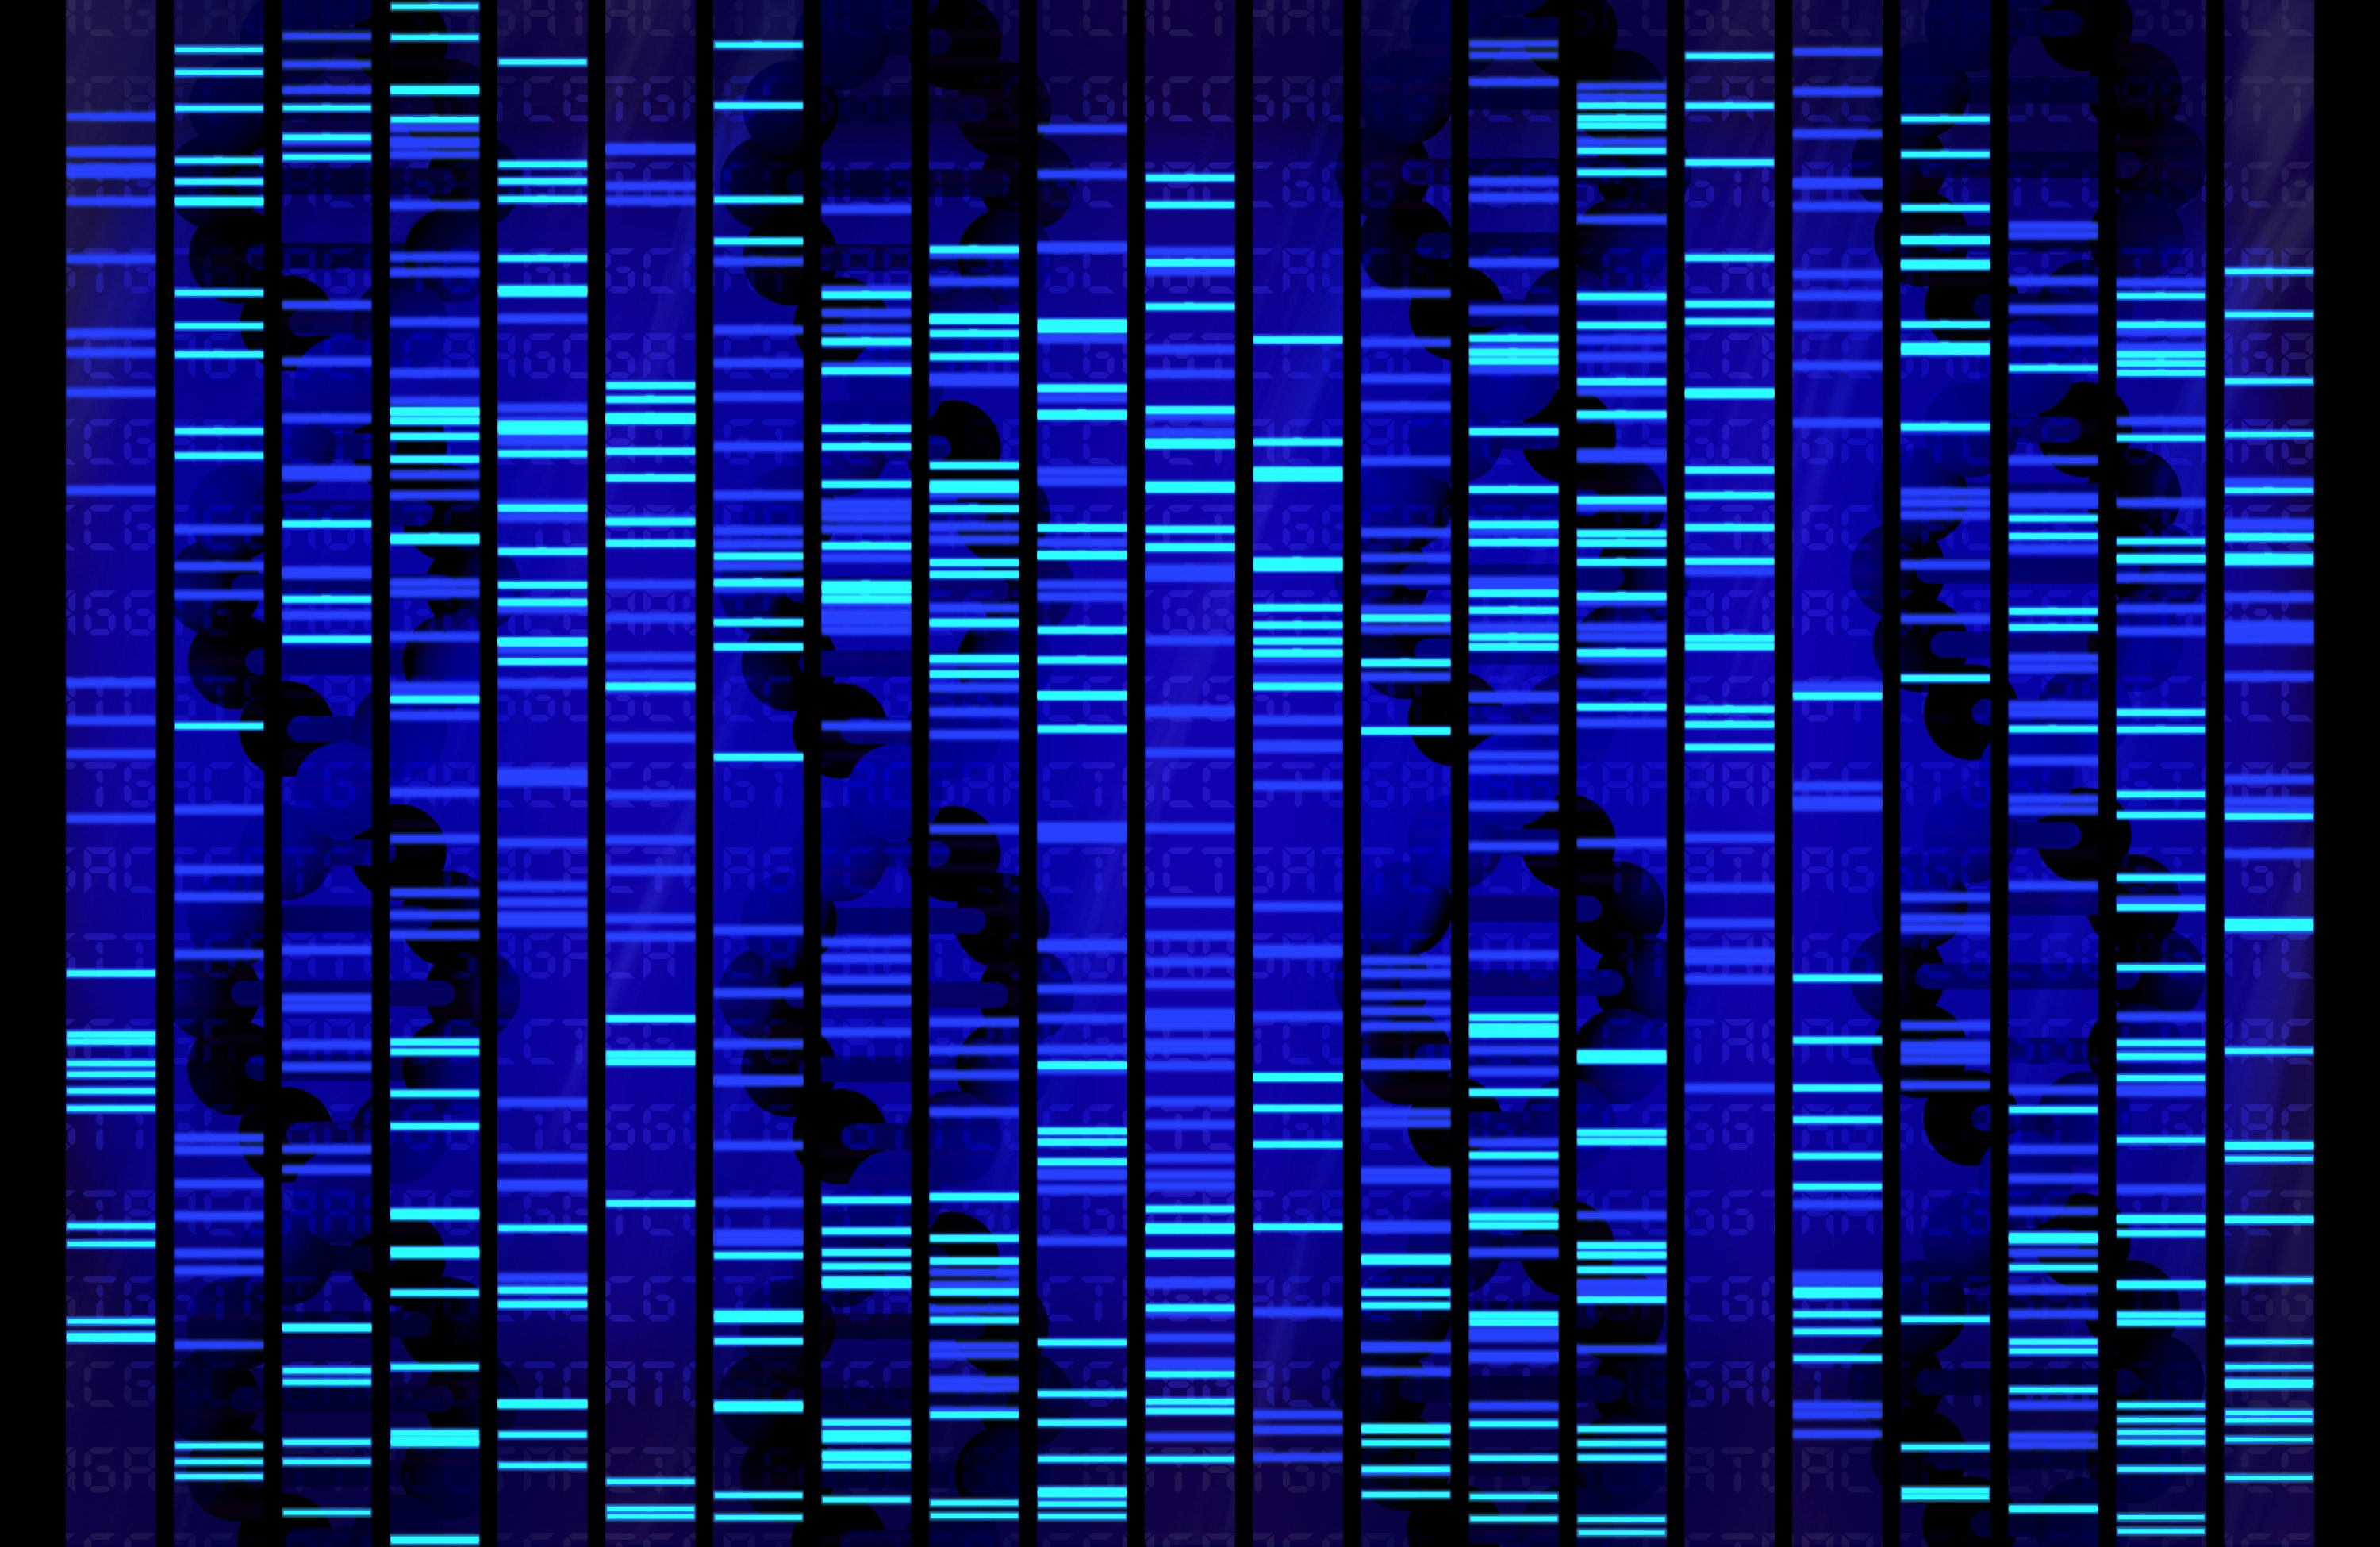 It's time to talk about who can access your digital genomic data